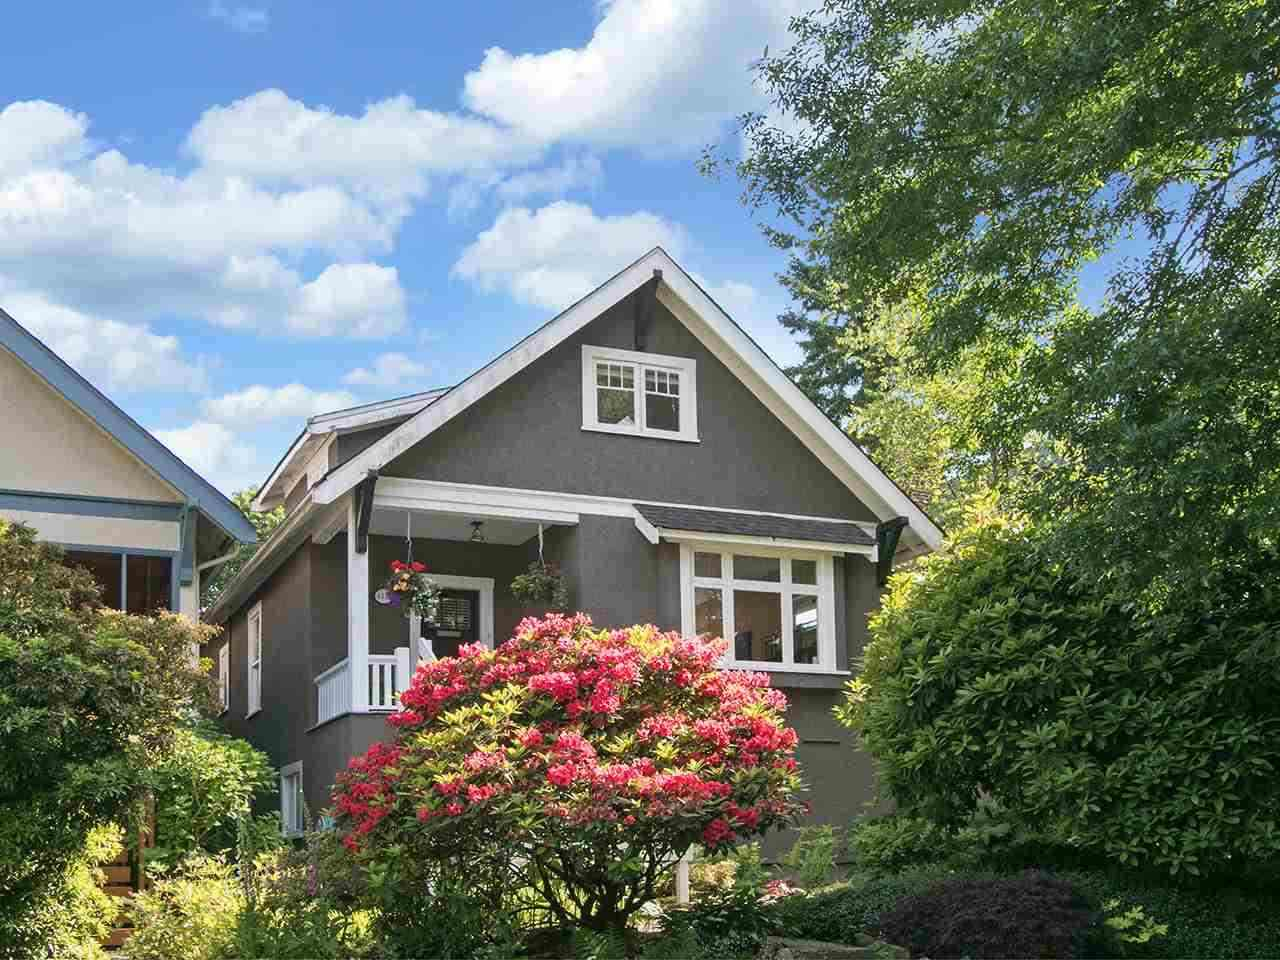 4118 W 14TH AVENUE - Point Grey House/Single Family for sale, 4 Bedrooms (R2591669) - #30